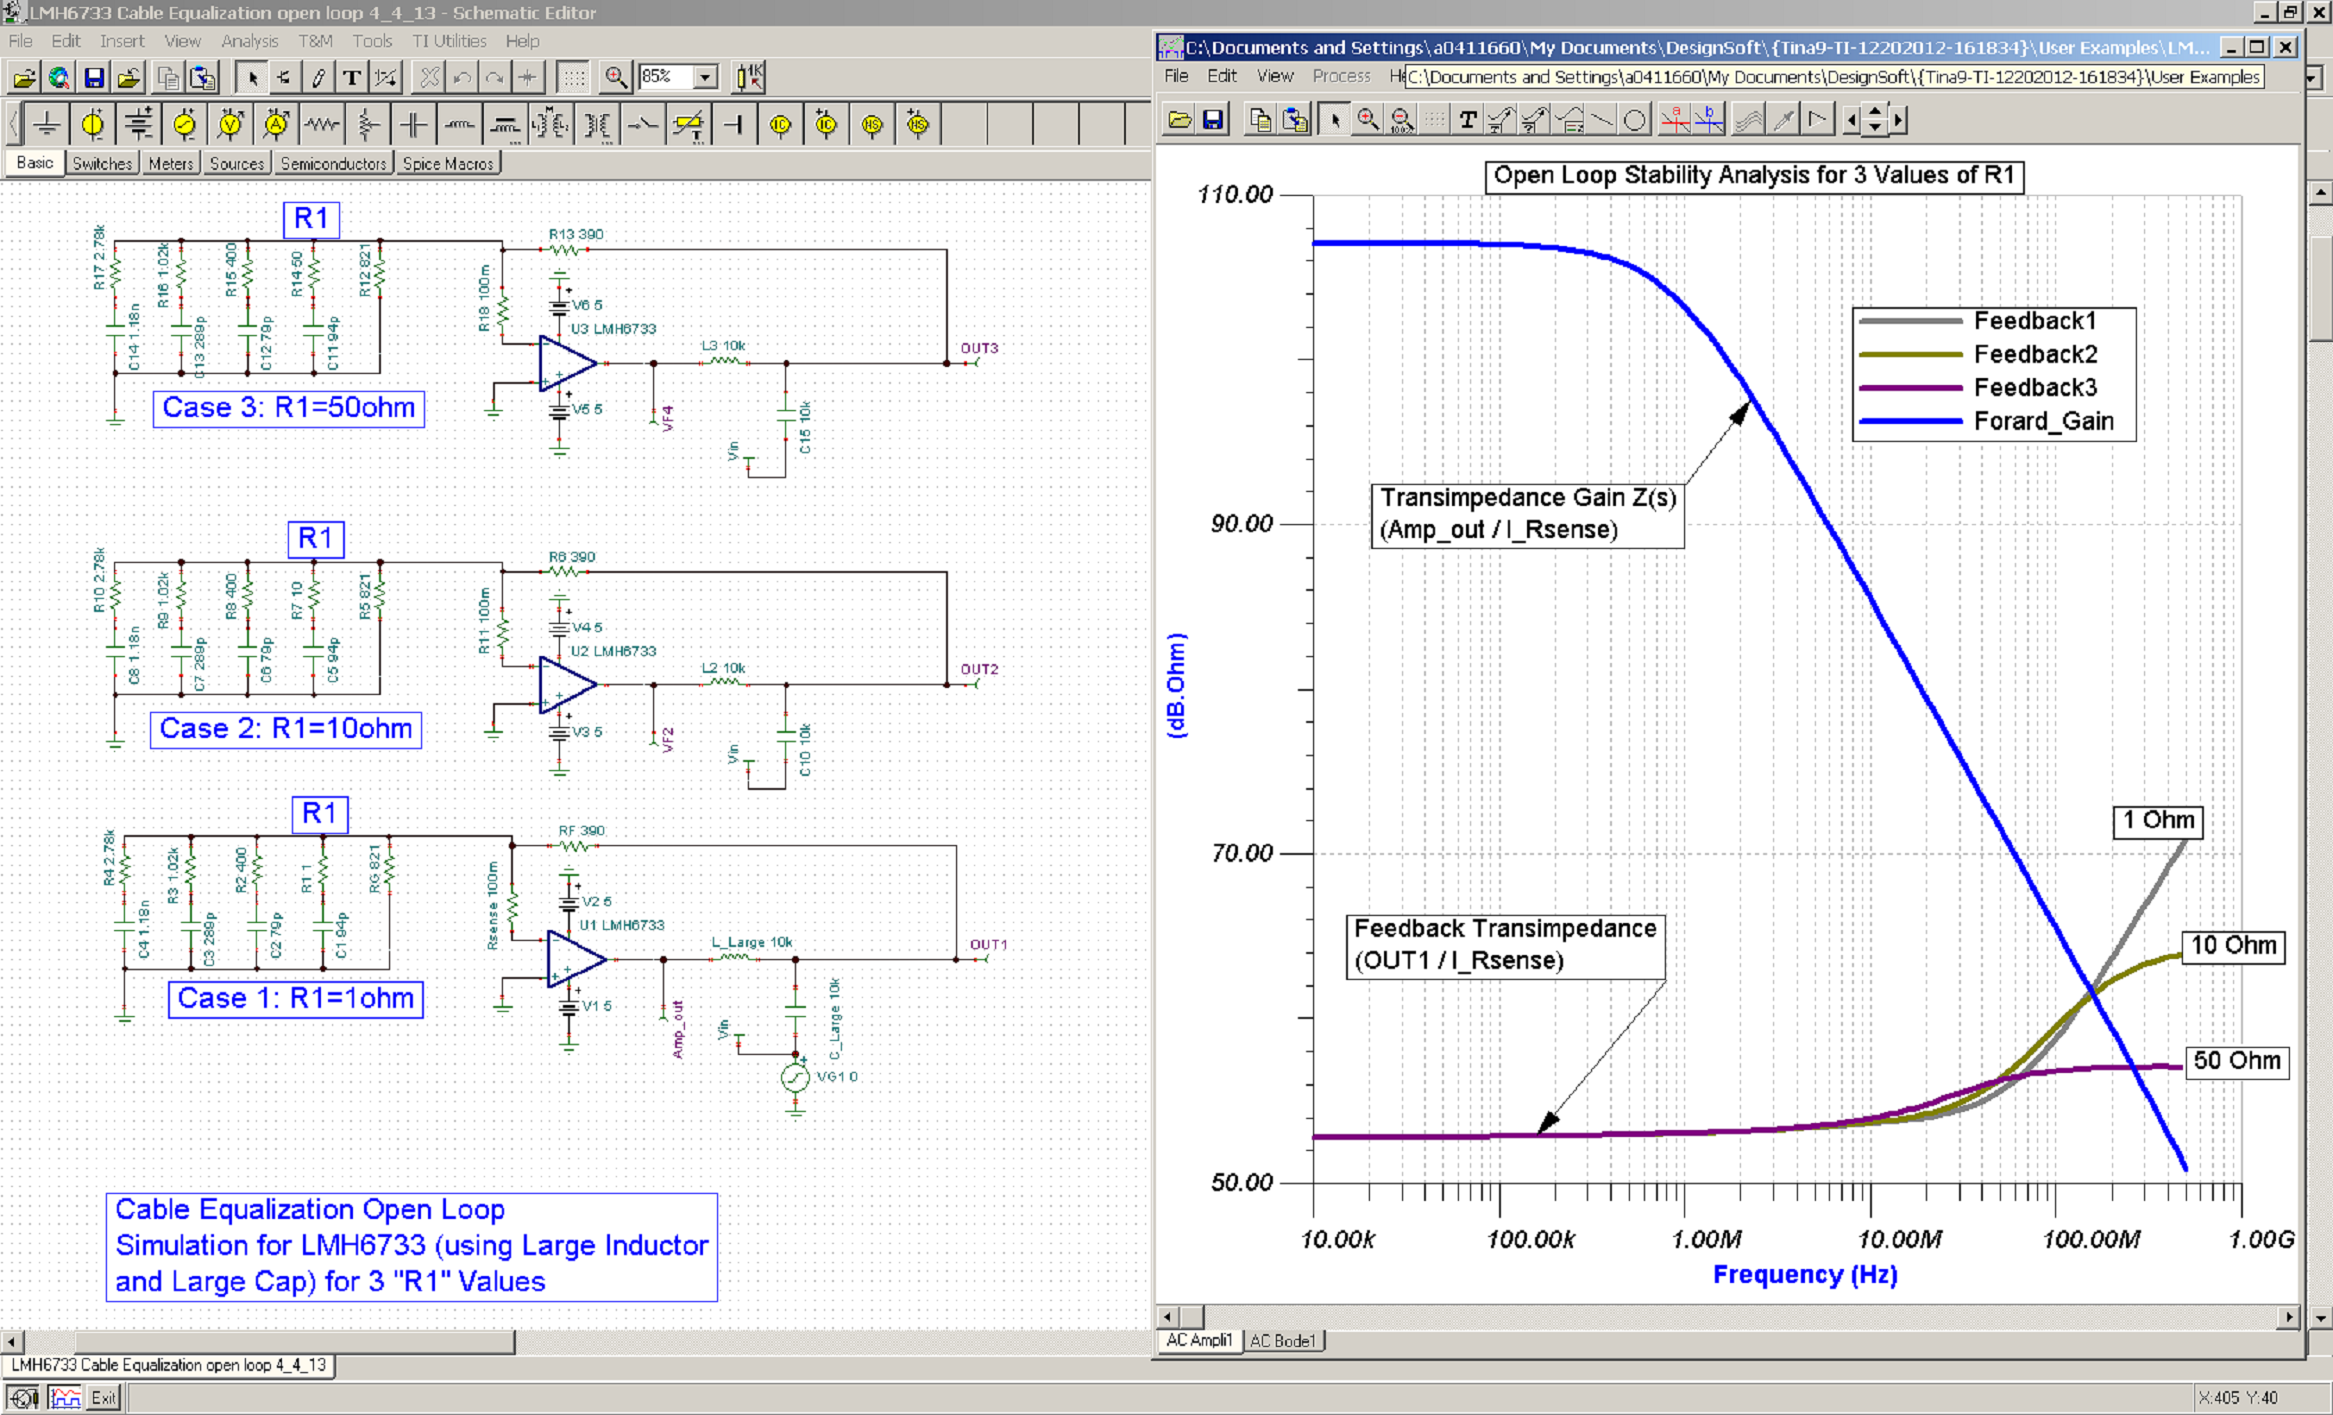 Cable Equalization 101 Simulating The Design And Improving Figure 2 Transimpedance Amplifier Transfer Function 3 Open Loop Gain Feedback Plot Intercept For Three Values Of R1